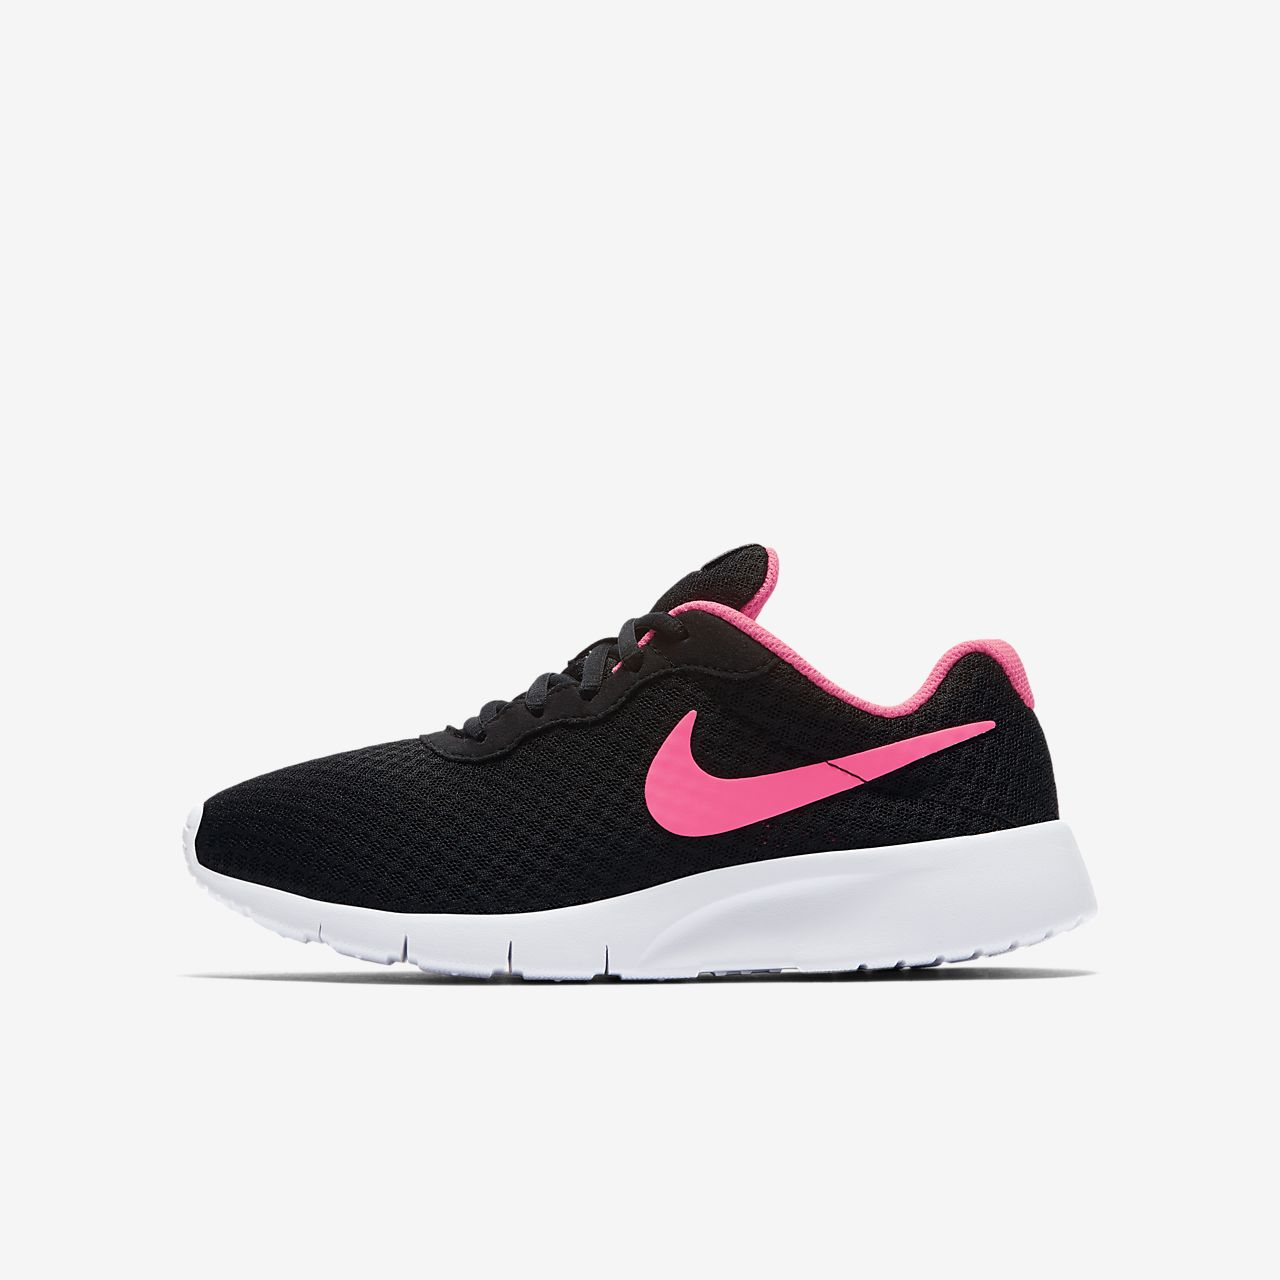 ... Nike Tanjun Older Kids' Shoe